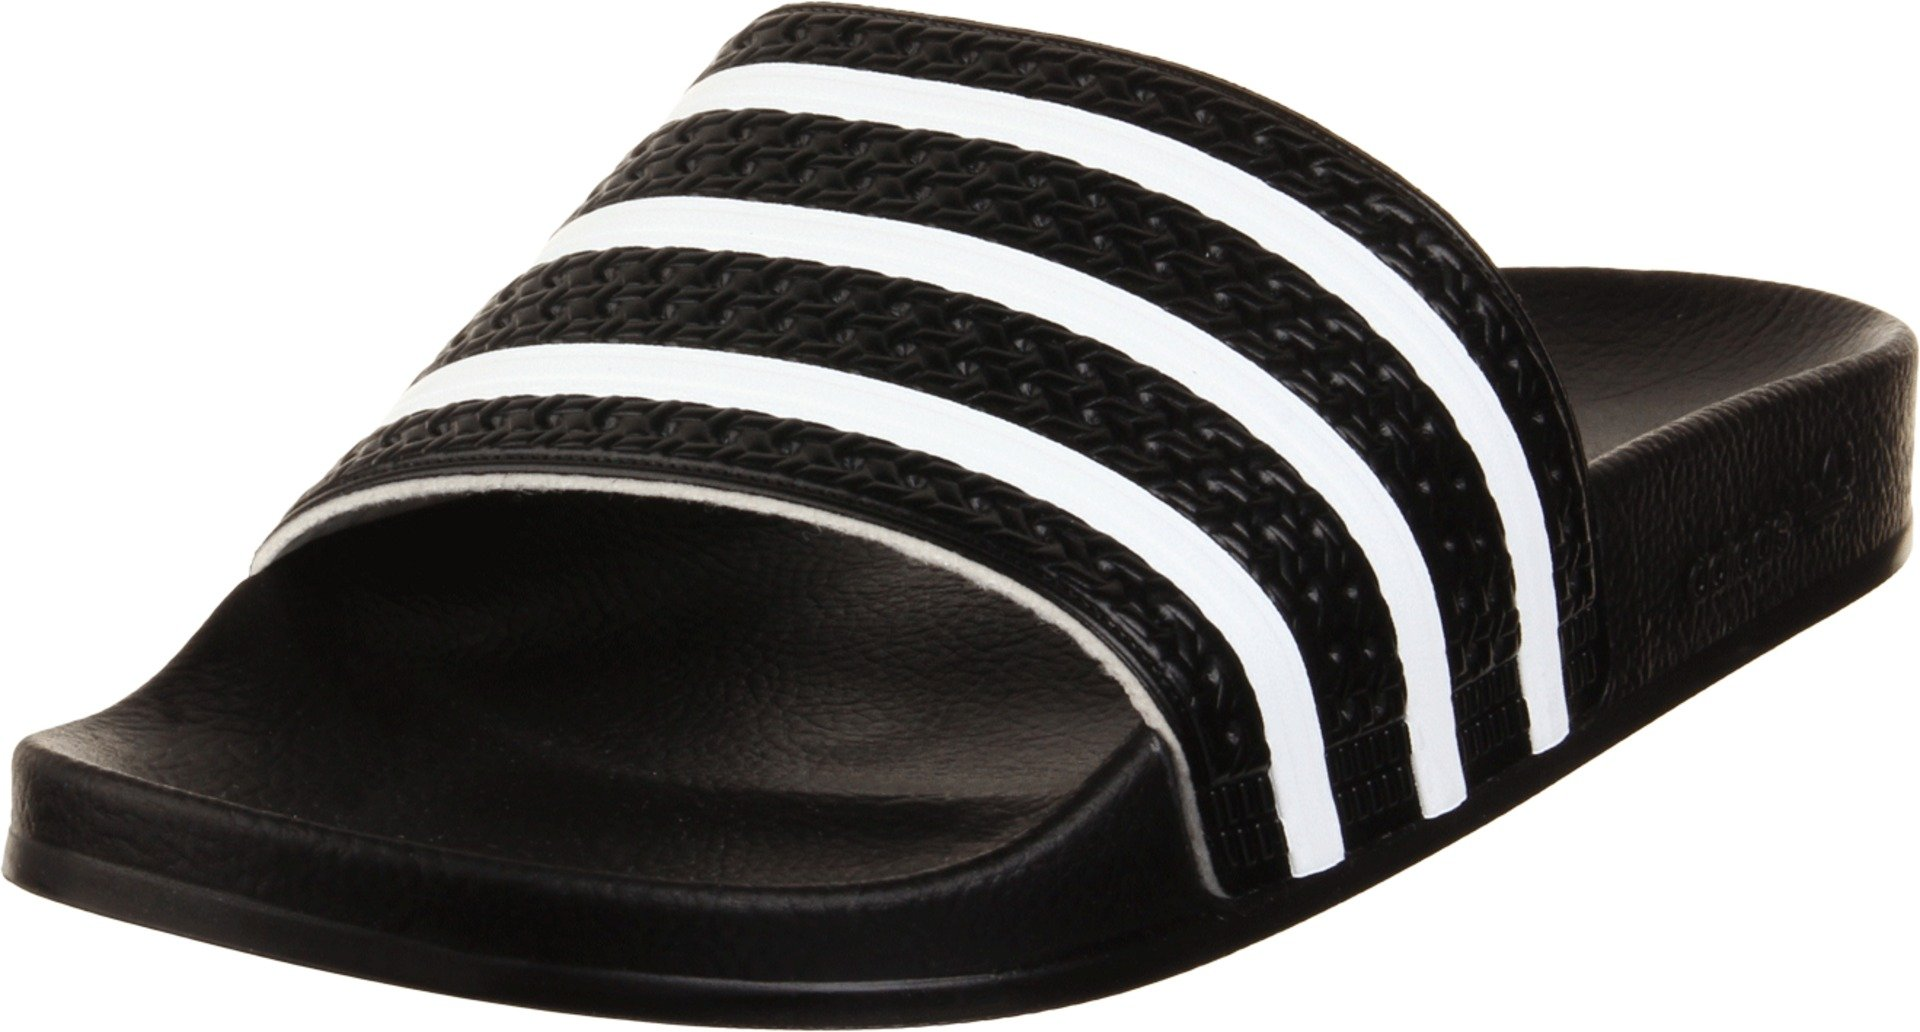 adidas Originals Men's Adilette Slide Sandal, Black/White/Black, 6 M US